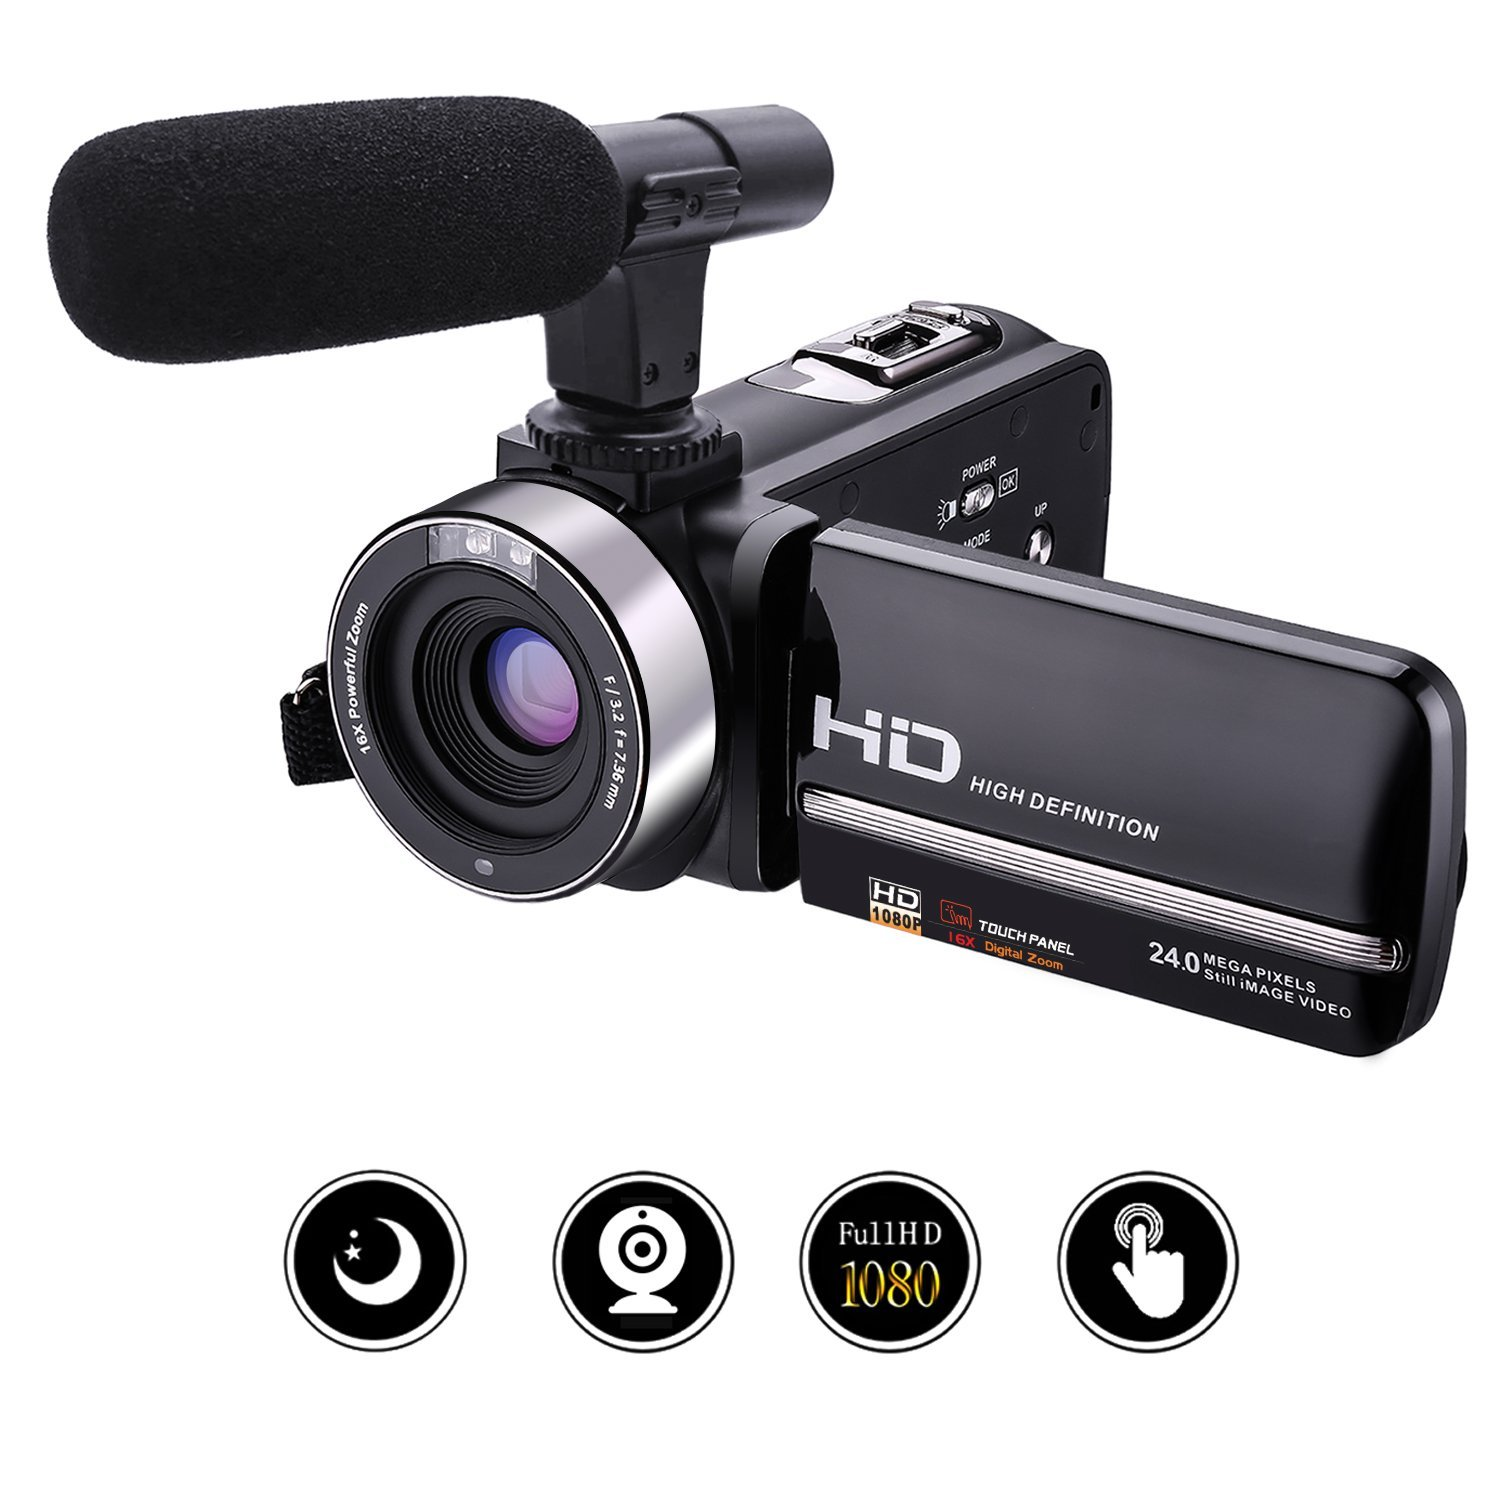 "Videocamara Full HD 1080p 30fps 24.0 MP Camera de Video con Micrófono Externo Cámara de Visión Nocturna Webcam 3"" Pantalla Táctil Videocámara Digital"